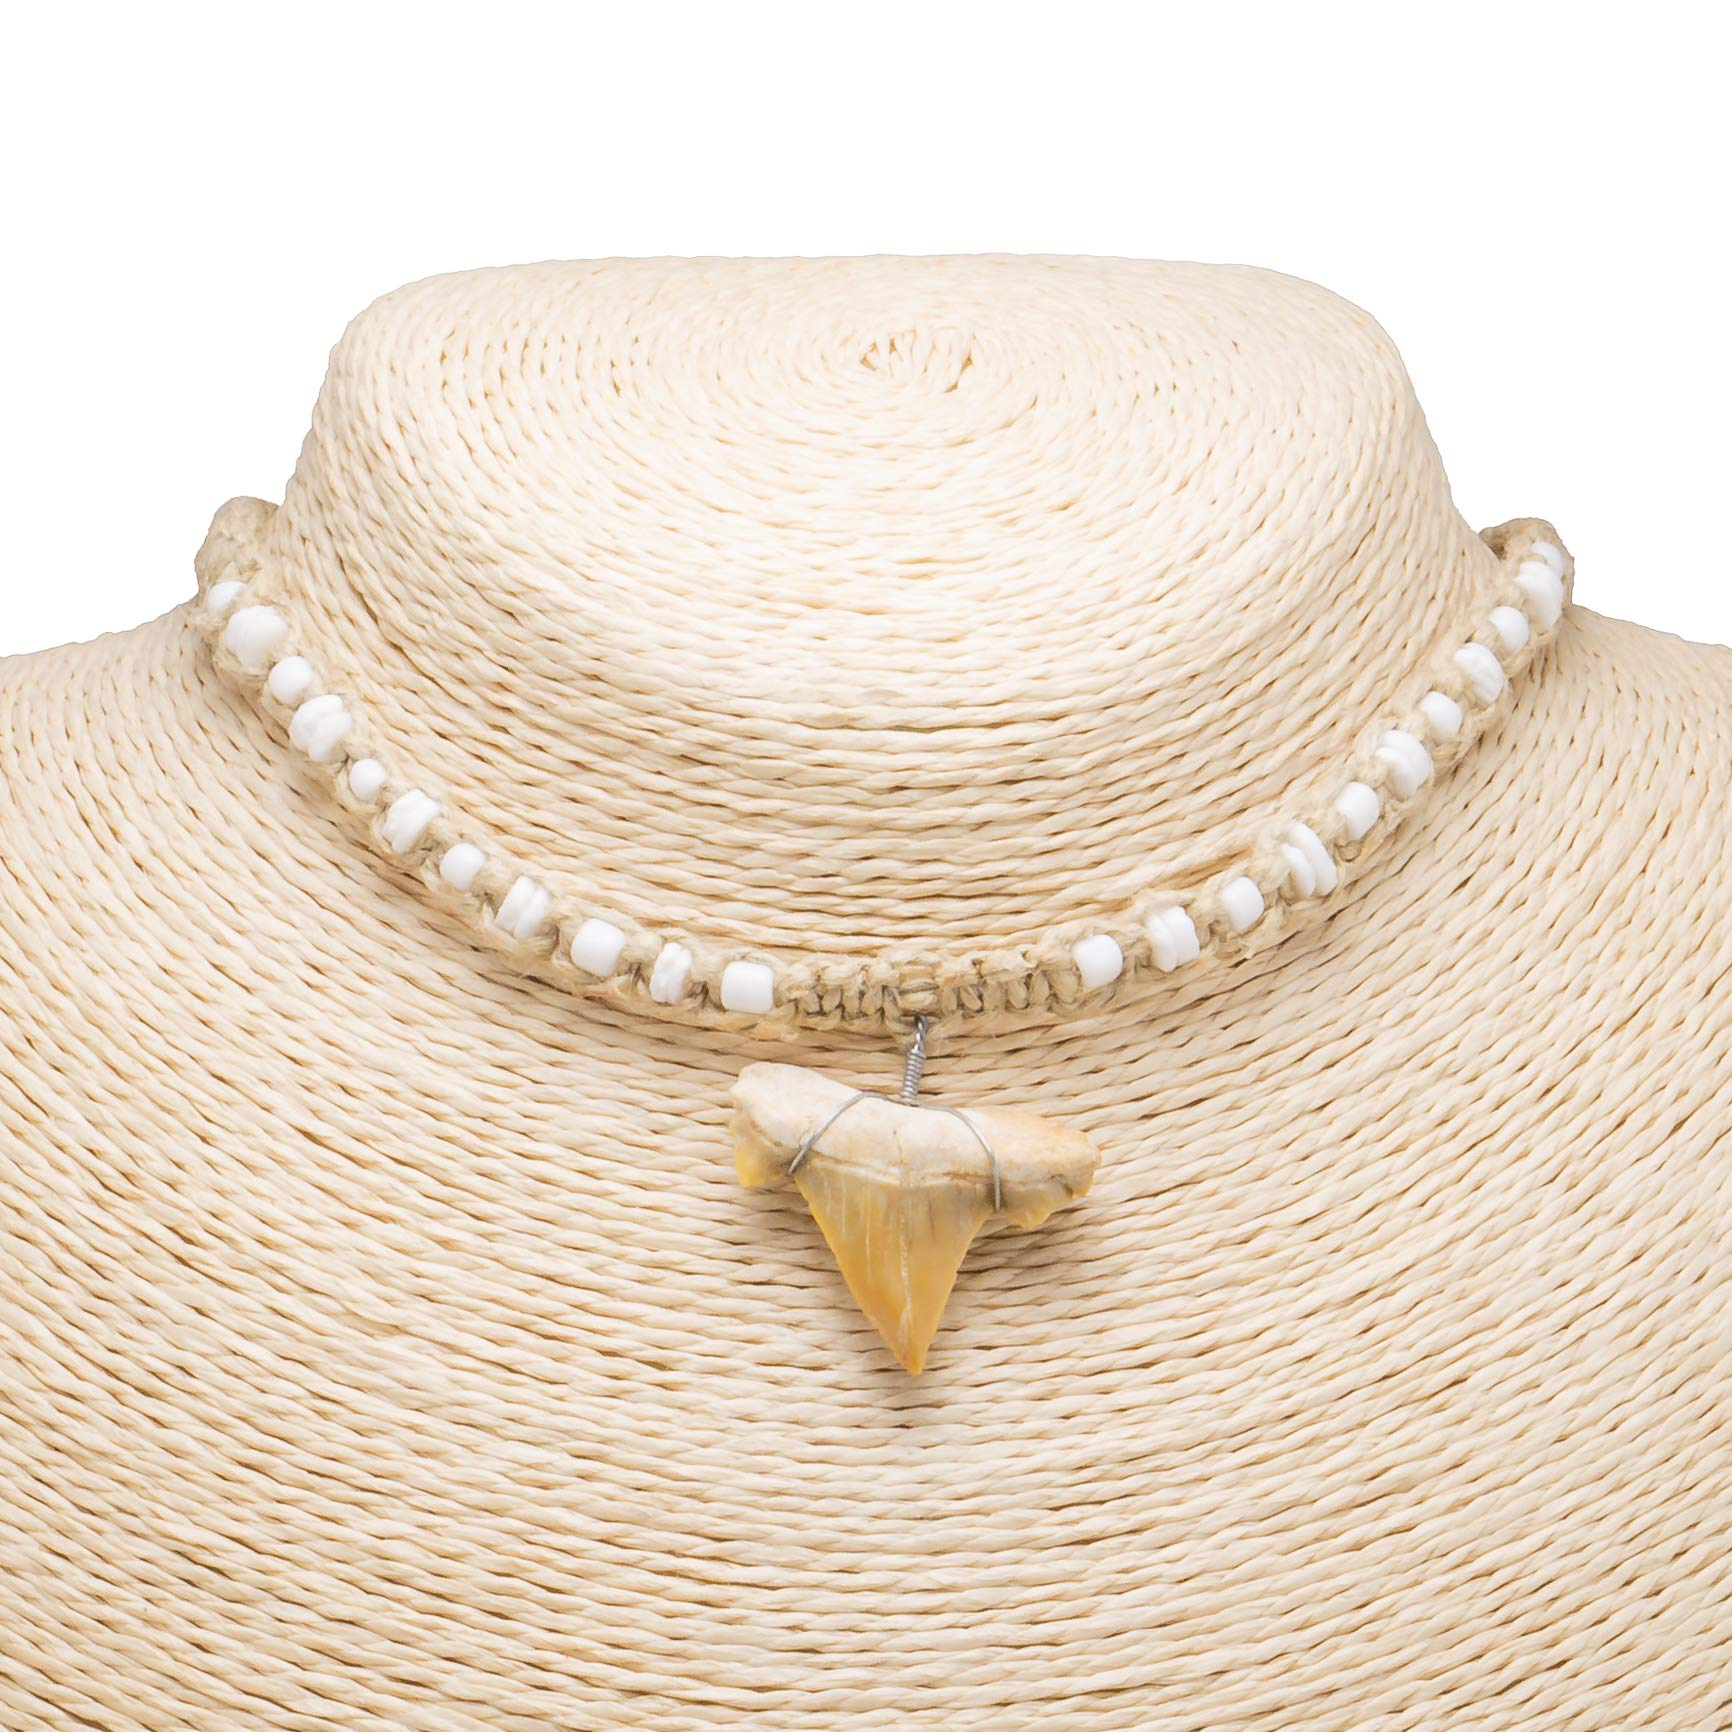 "1""+ Shark Tooth Pendant on Hemp and Puka Shell Beads Necklace"